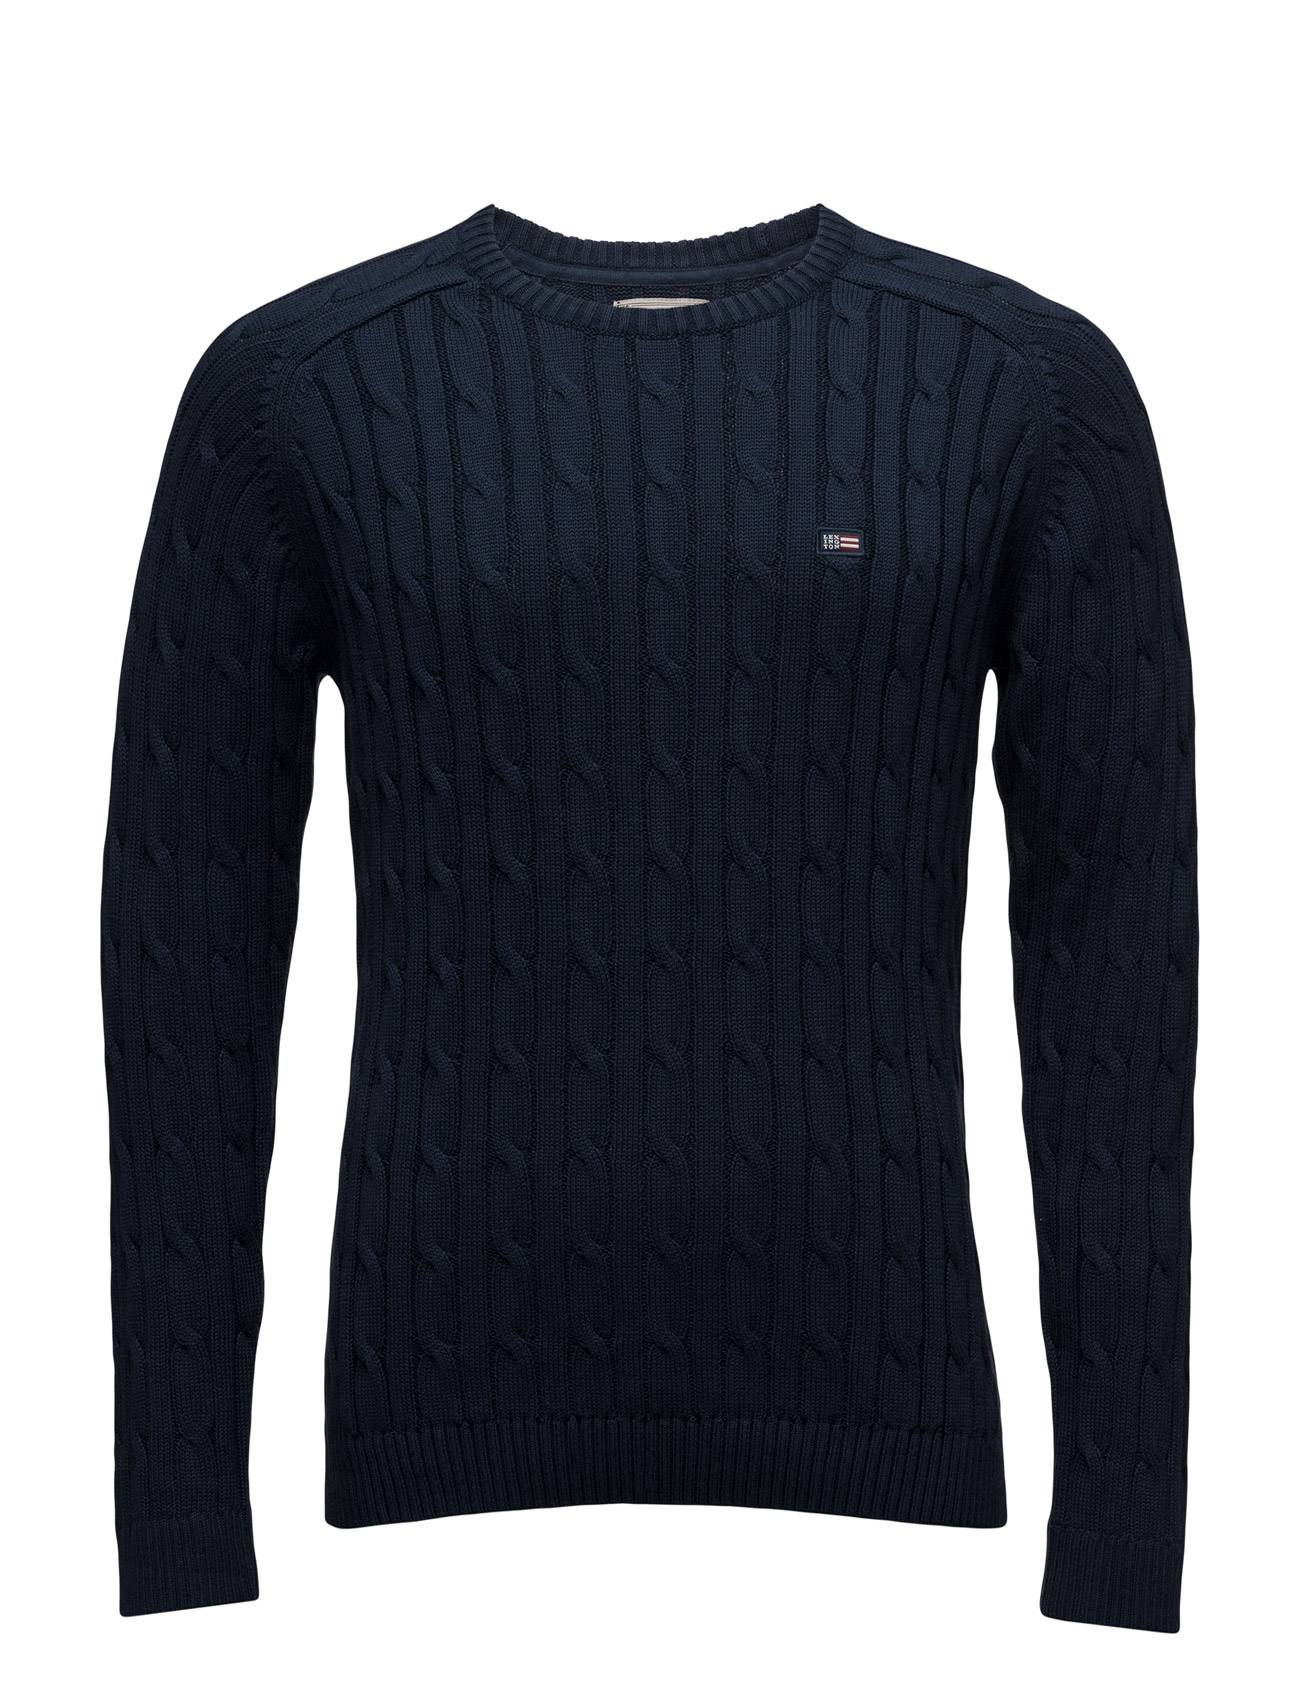 Lexington Company Andrew Cotton Cable Sweater